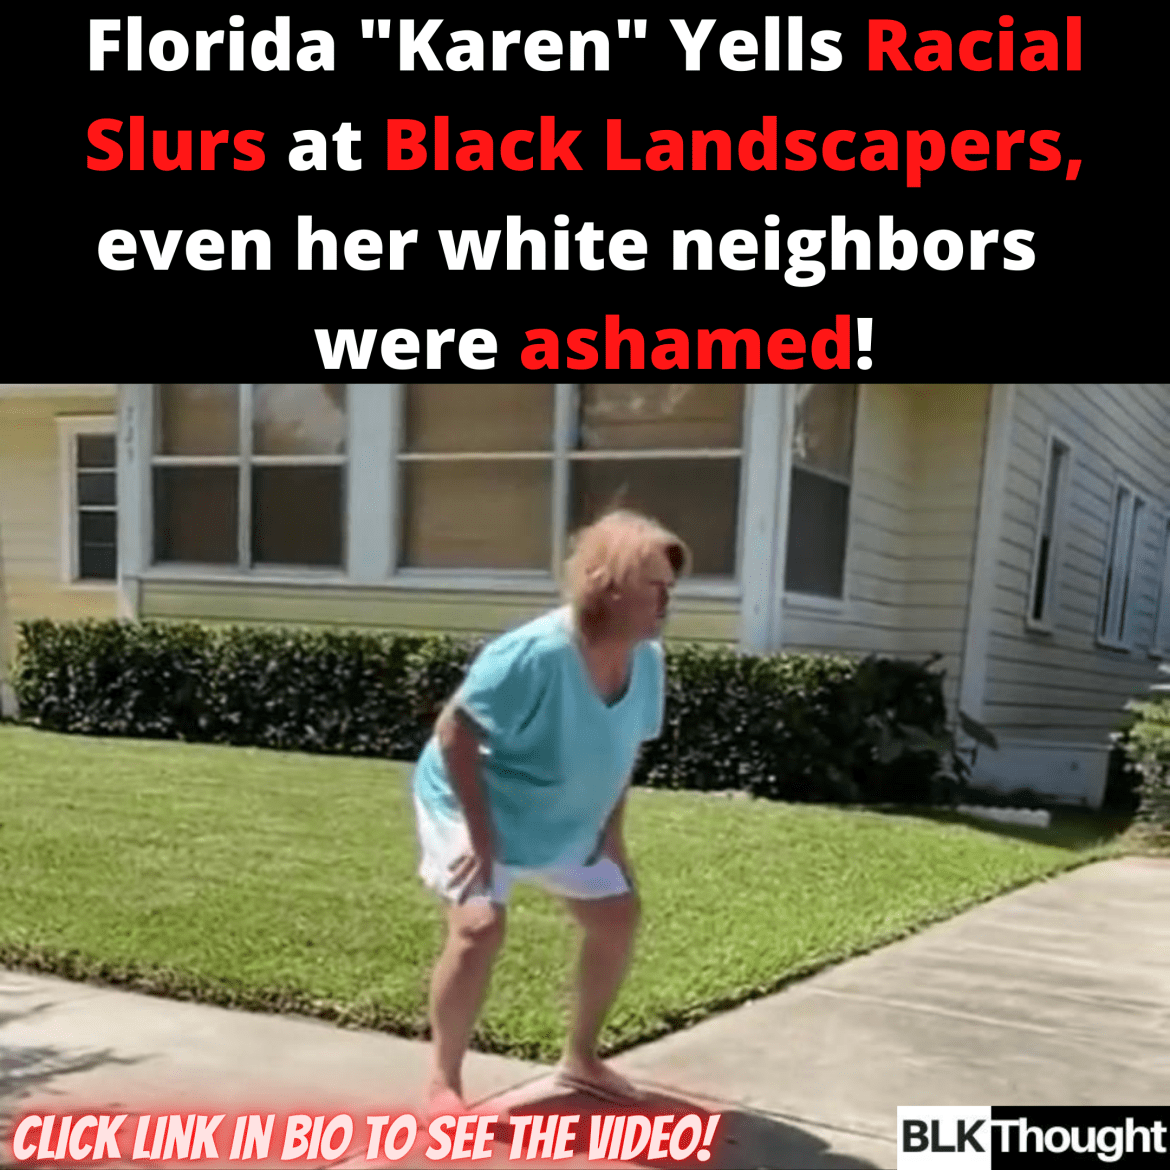 Old White Lady Yells Racial Slurs at Black Landscapers